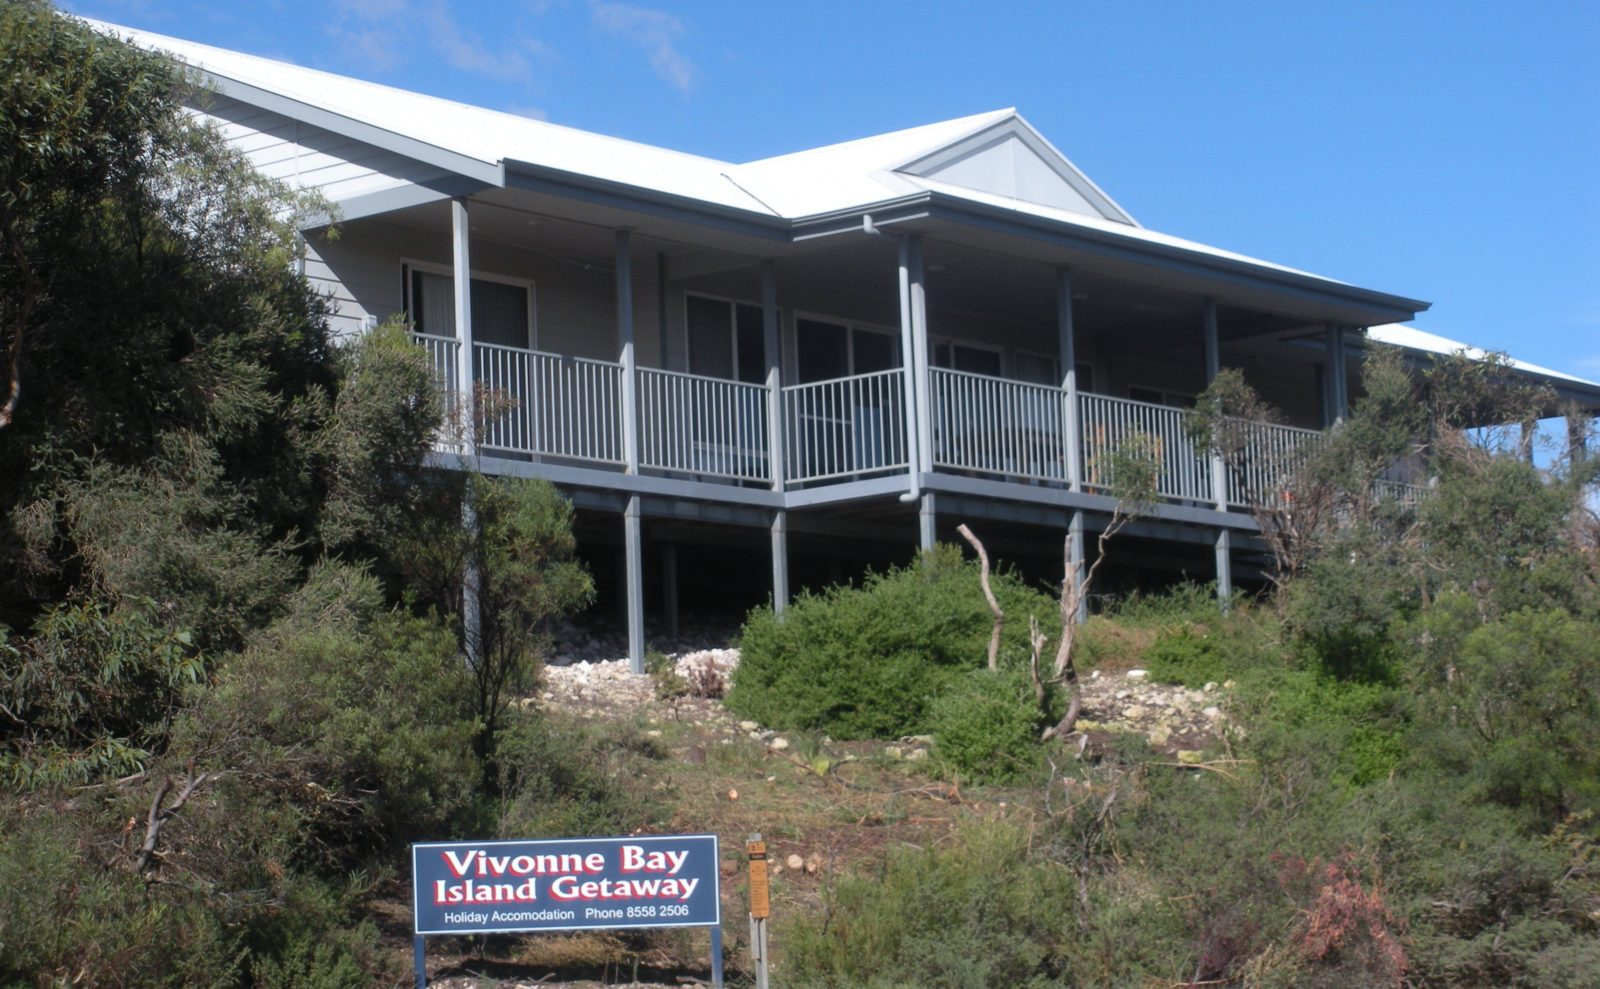 Photo of Vivonne bay Island Getaway